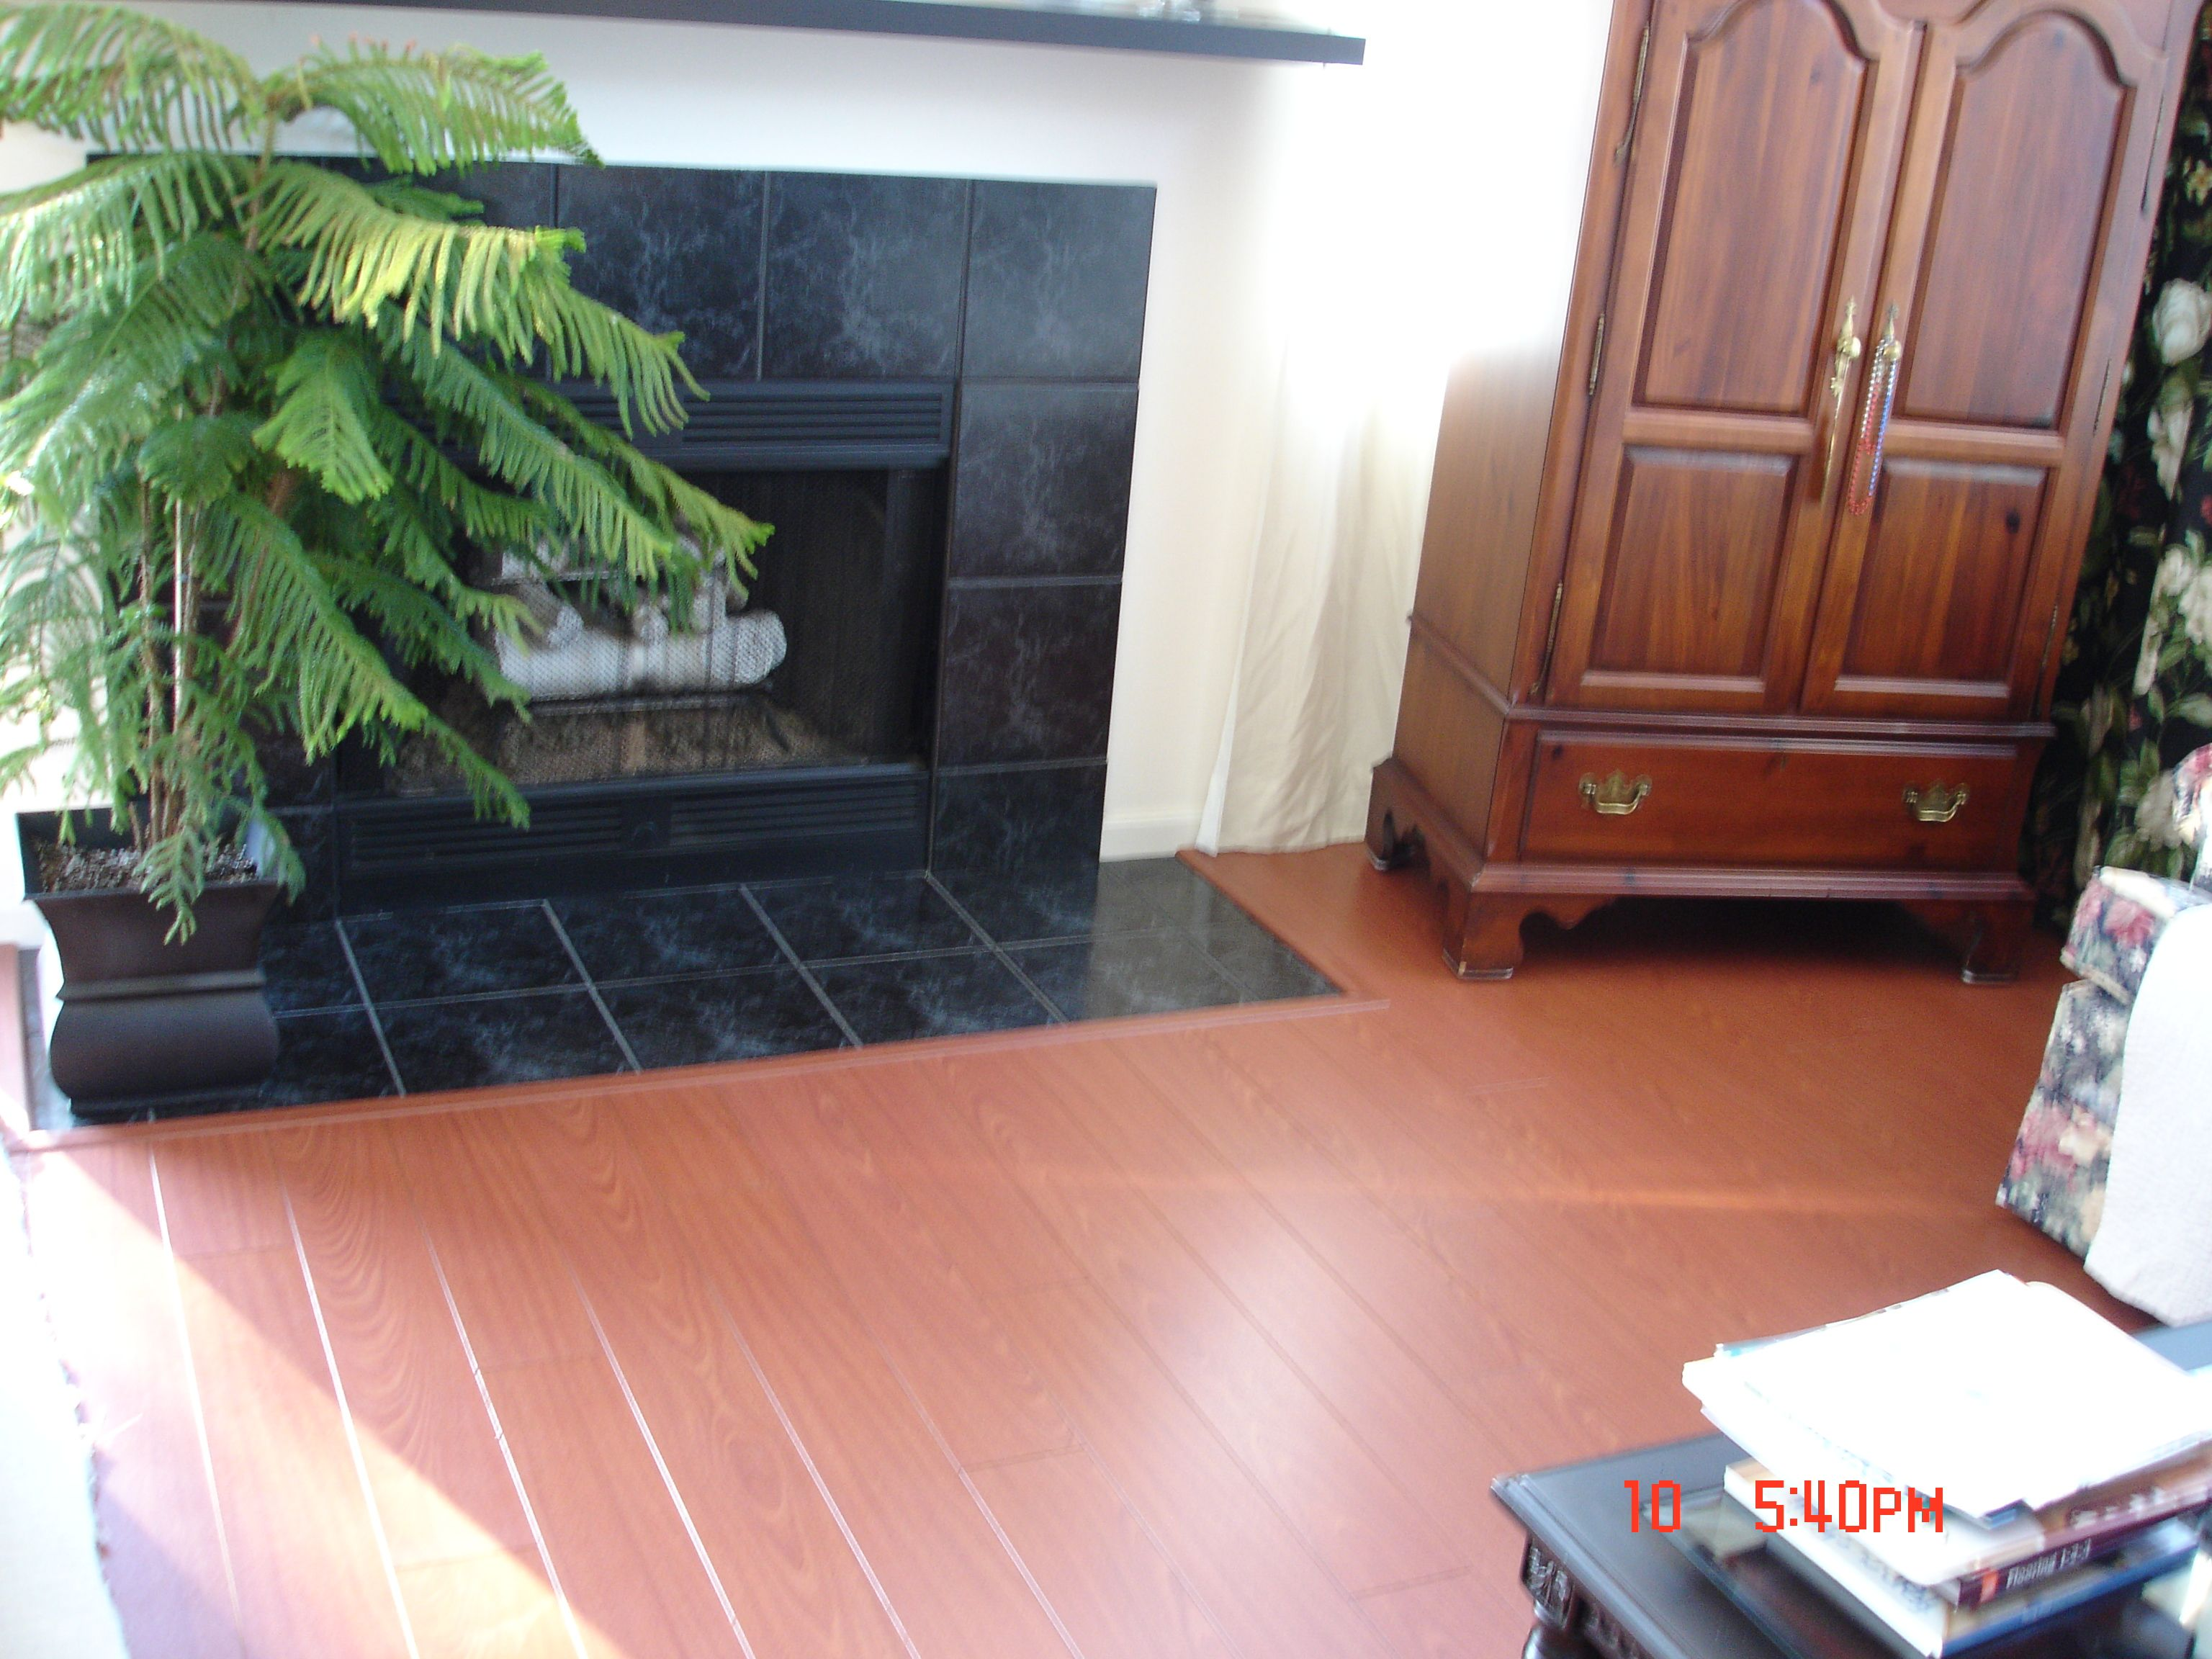 Finished laminate flooring around fireplace tile with trim